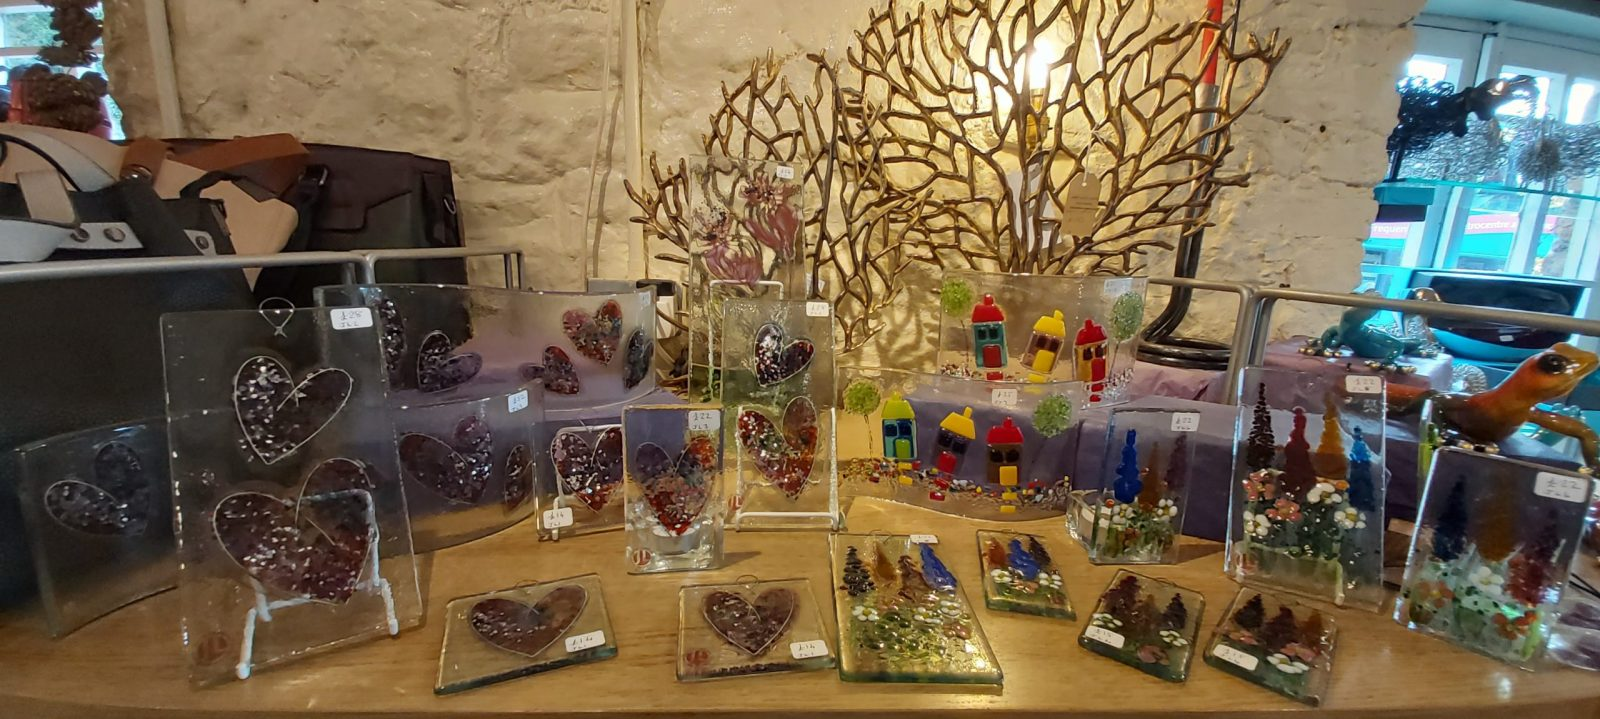 Looking for Unusual Gifts? Come to Craft Works gallery of Corbridge | Homeware | Garden Ornaments